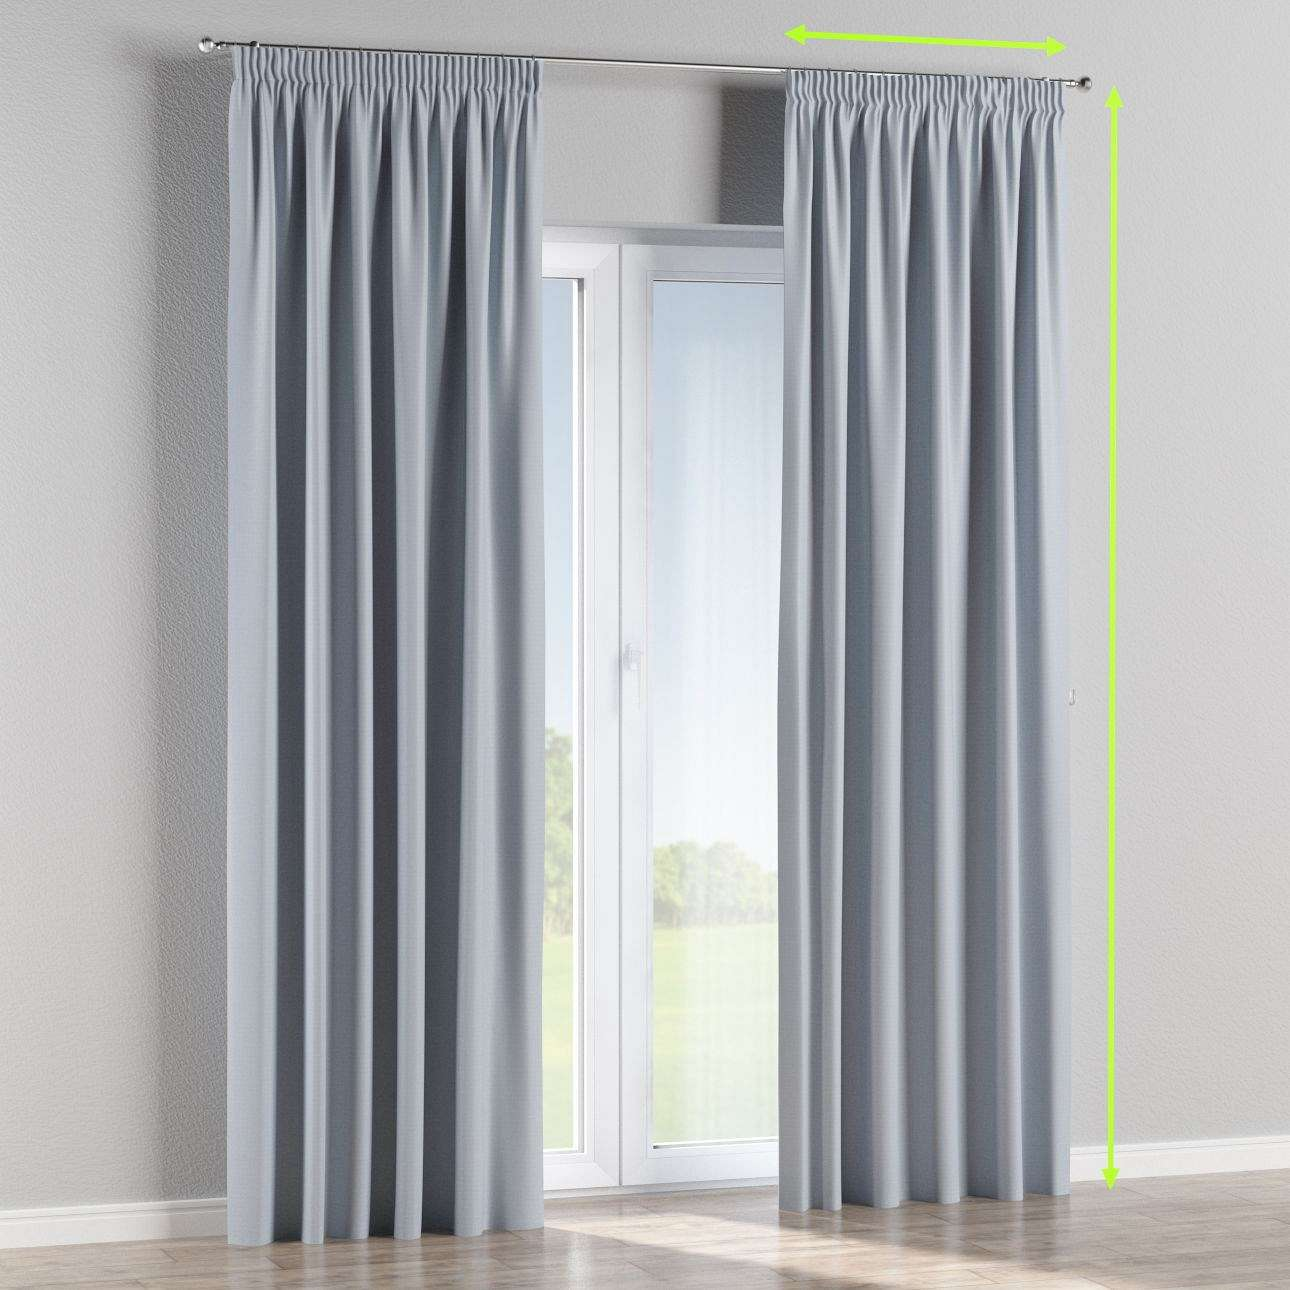 Pencil pleat curtain in collection Blackout, fabric: 269-62